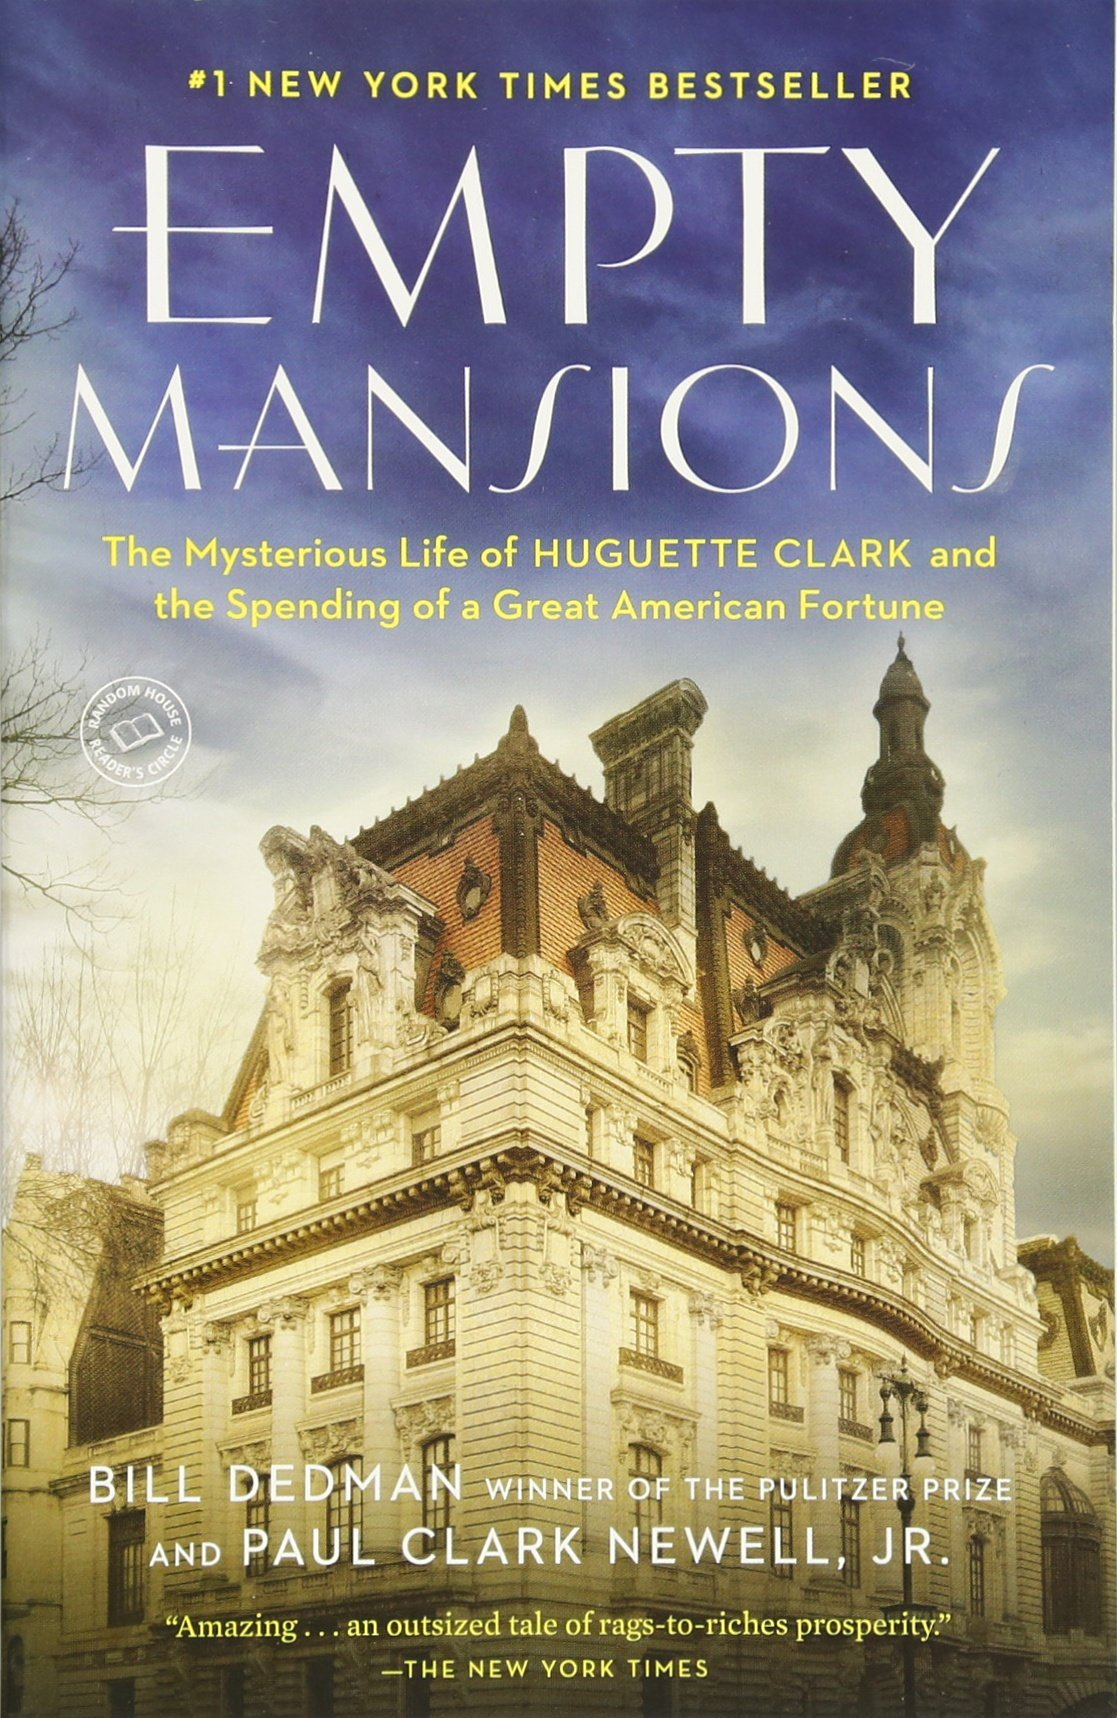 Empty Mansions: The Mysterious Life Of Huguette Clark And The Spending Of A  Great American Fortune: Bill Dedman, Paul Clark Newell Jr: 8601420343979: